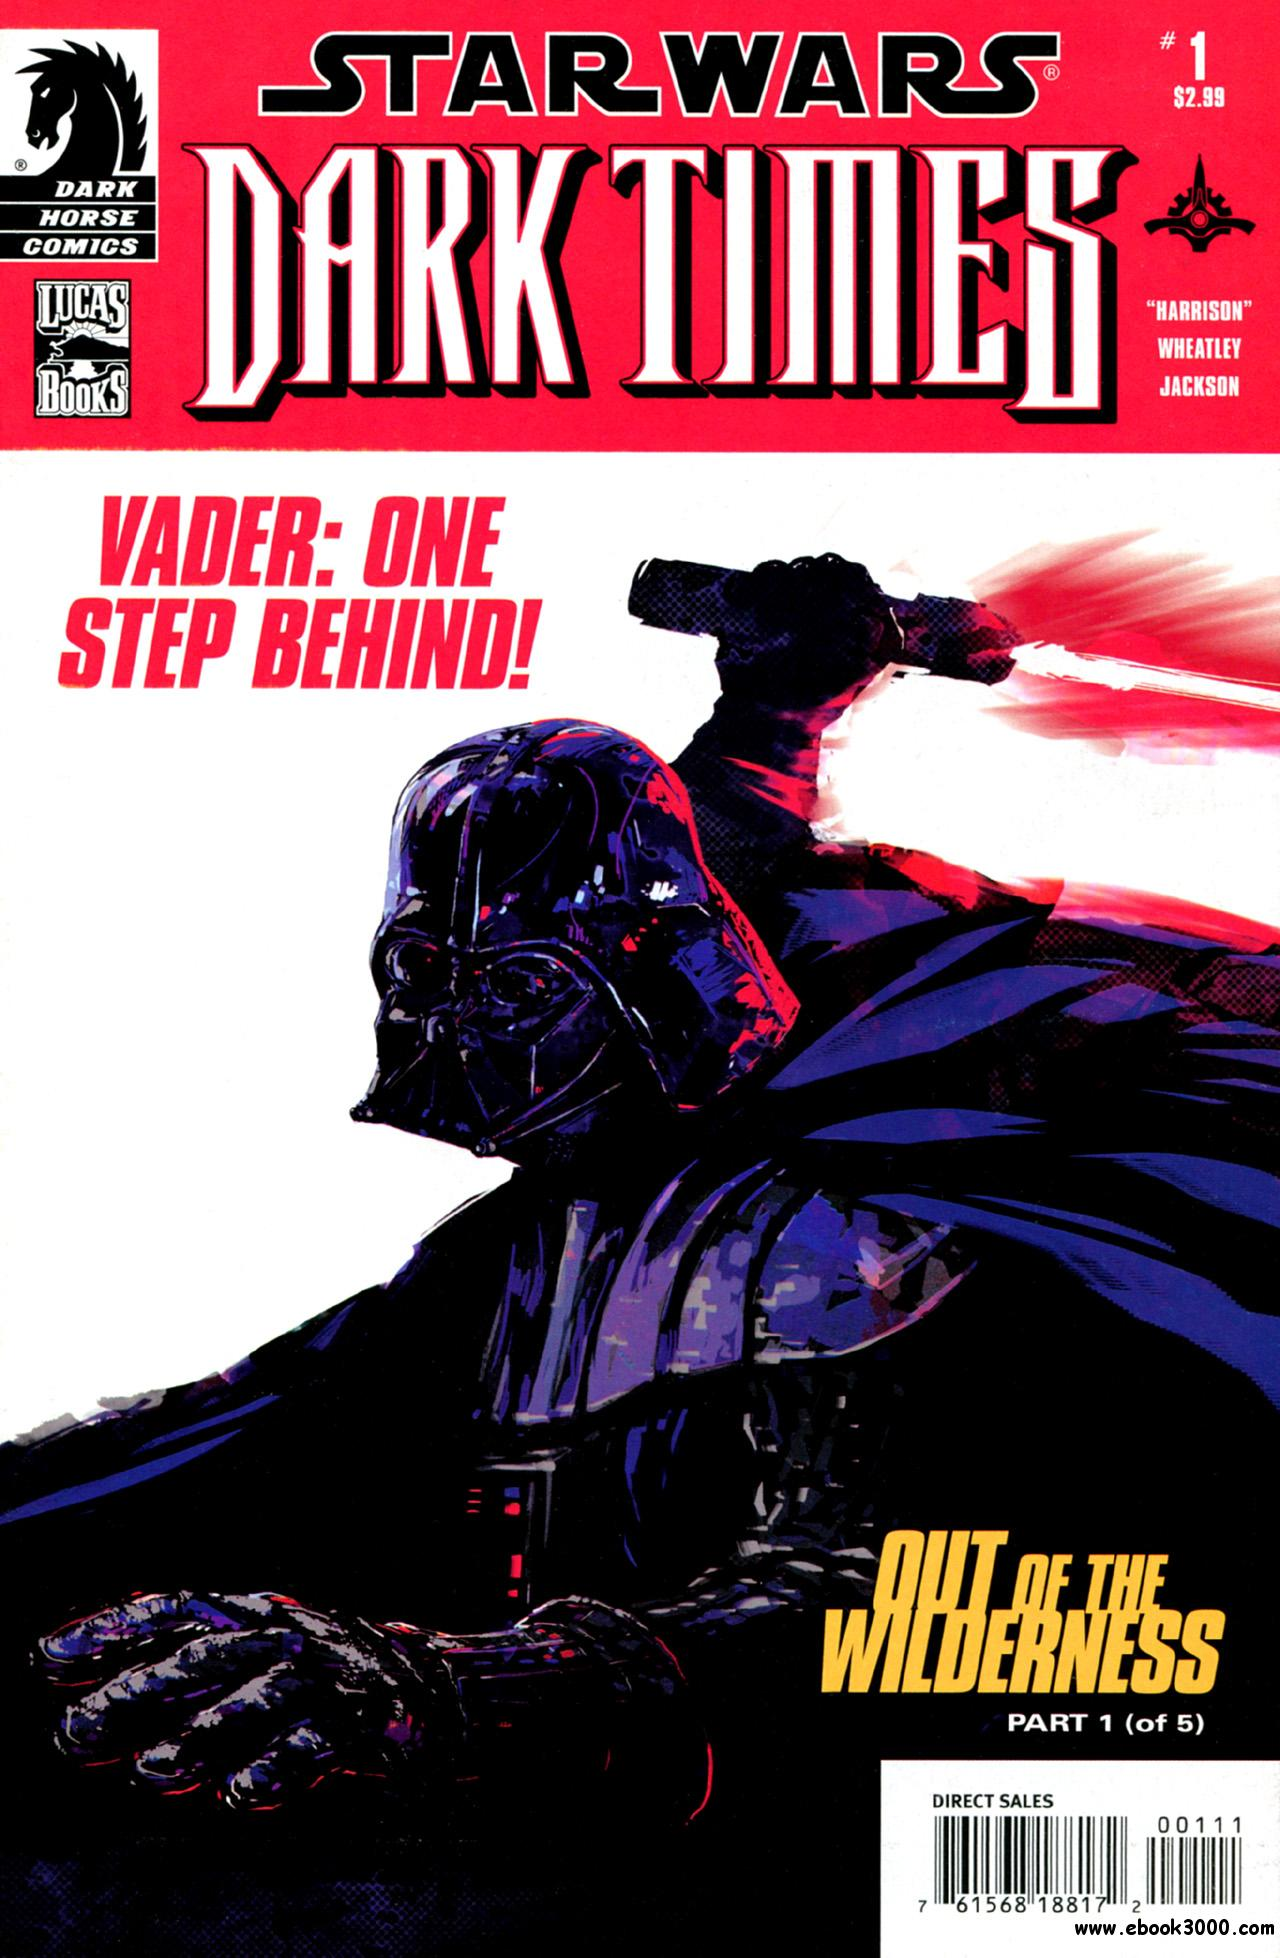 Star Wars: Dark Times - Out of the Wilderness #1 (2011) free download